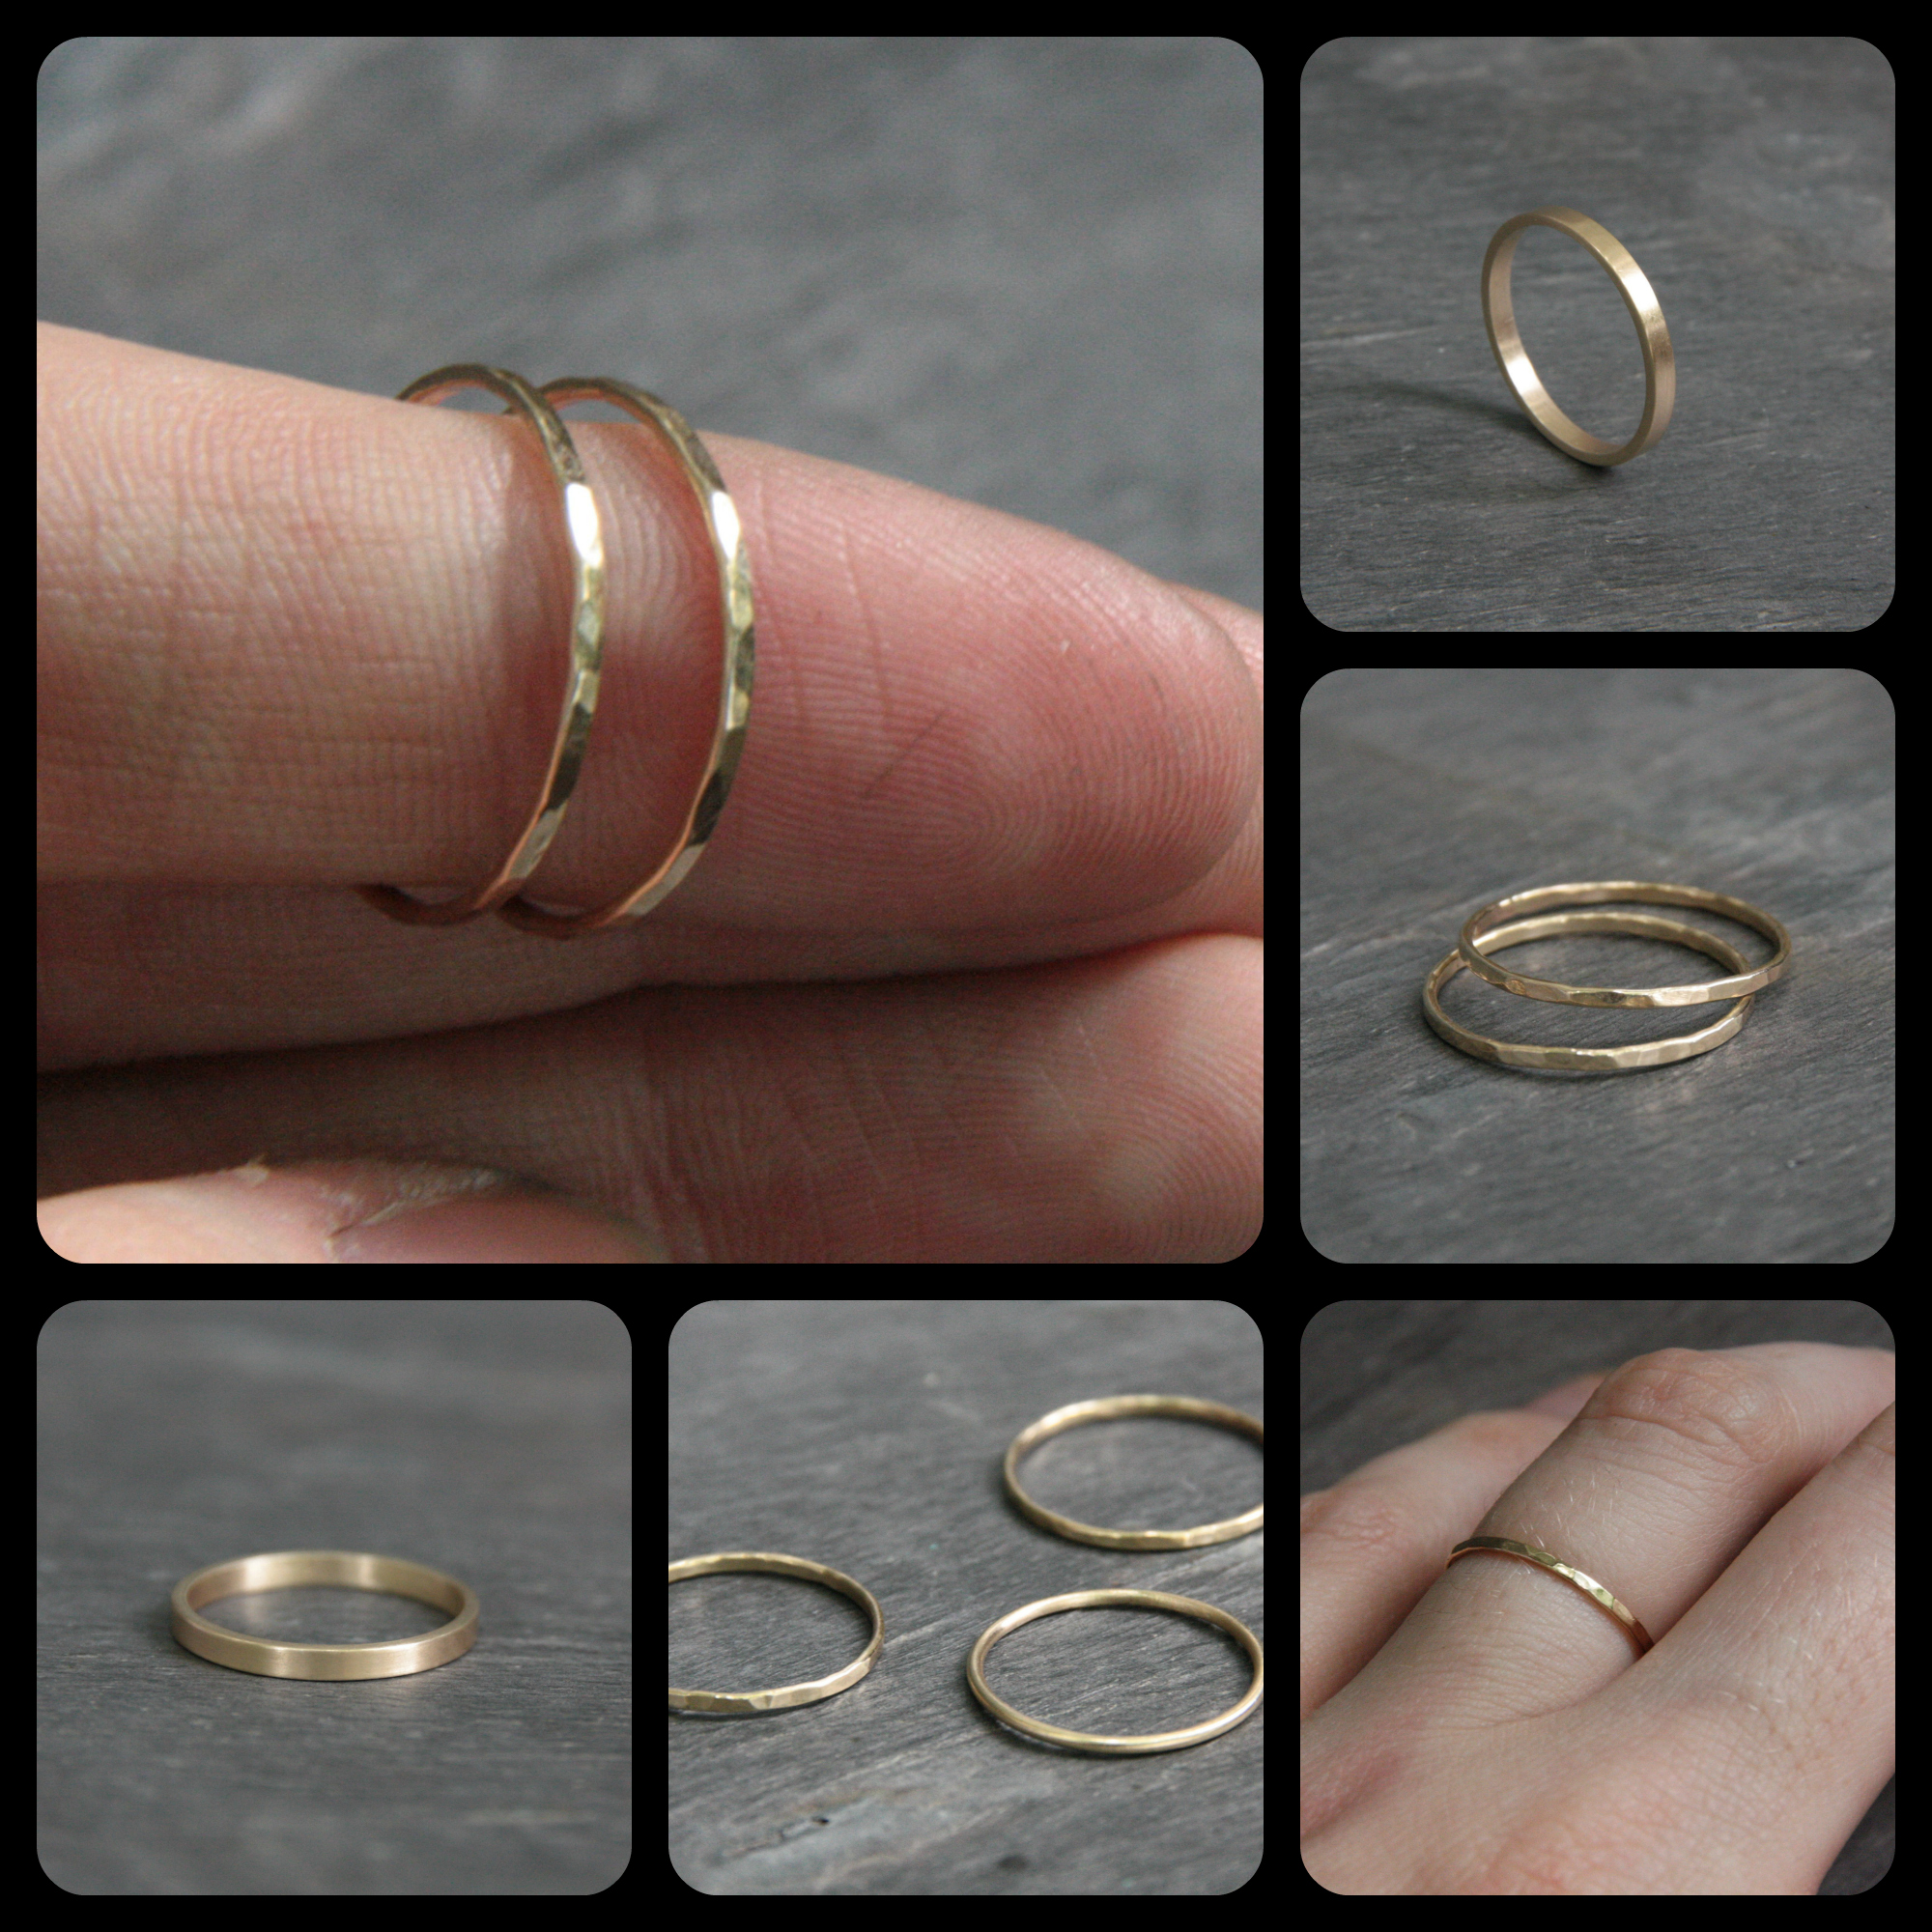 jewelry, handmade, gold rings, gold